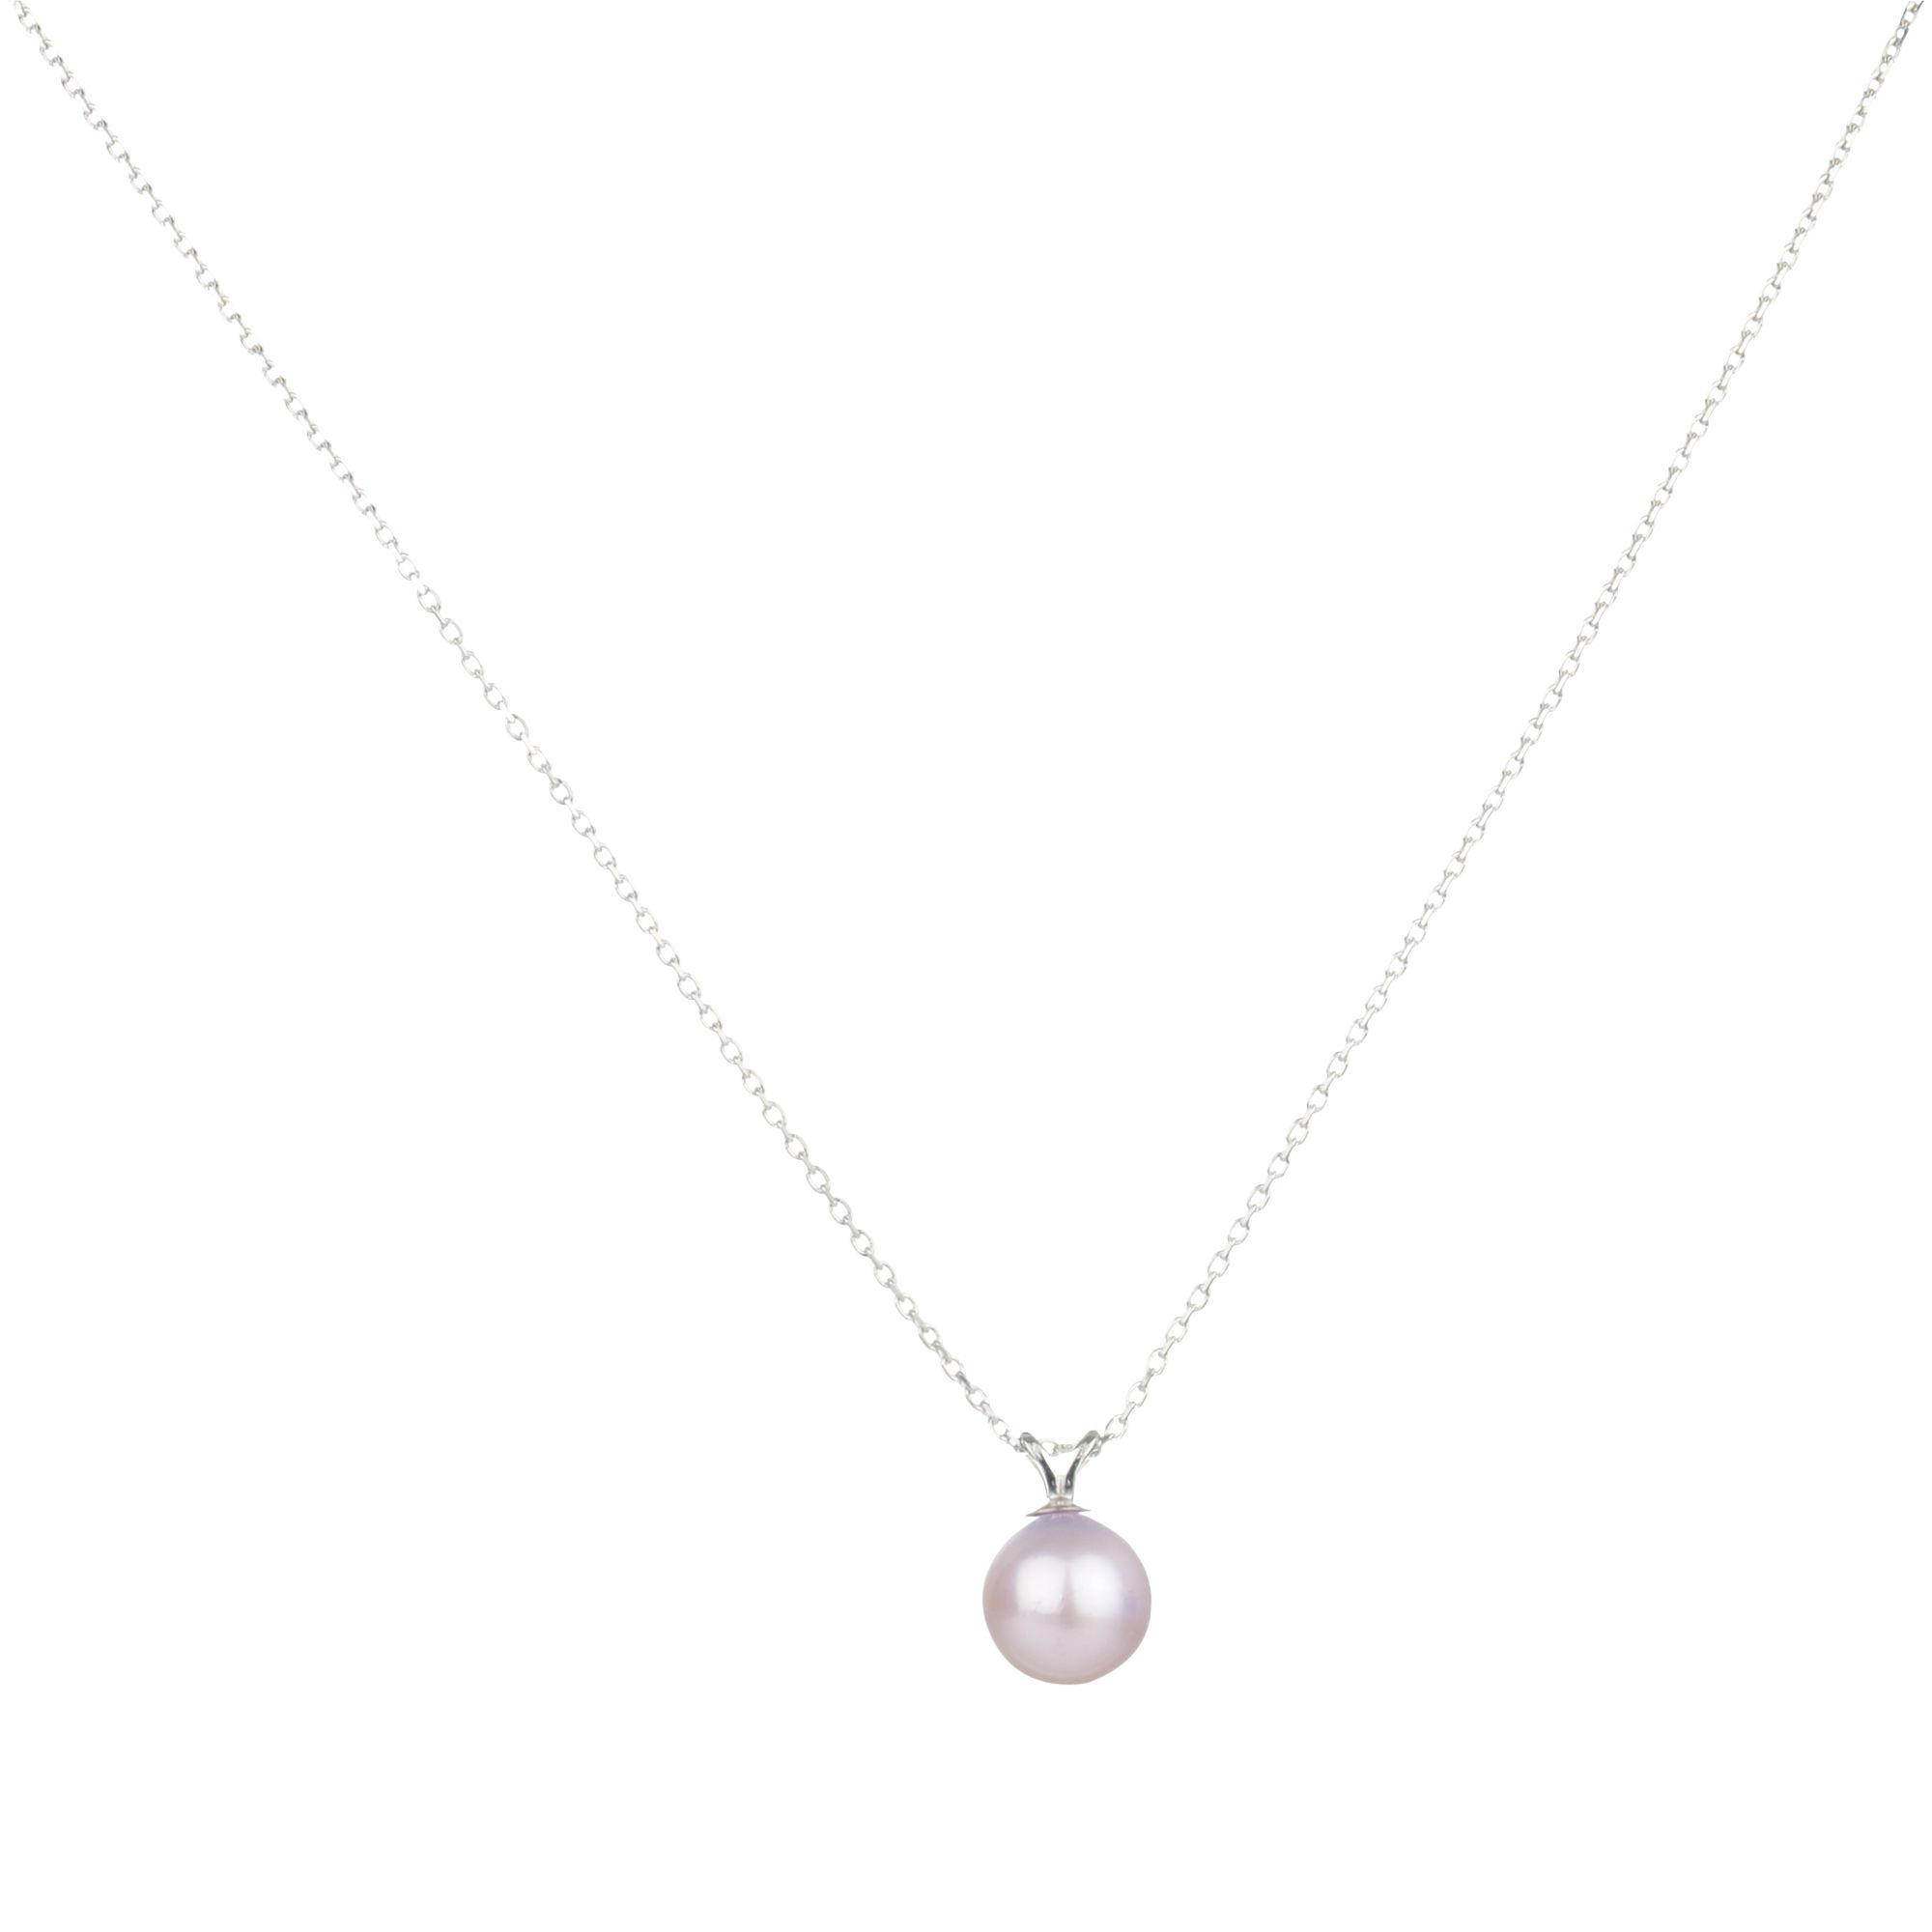 9ct White Gold Pale Purple Fresh Water Pearl Pendant Necklace